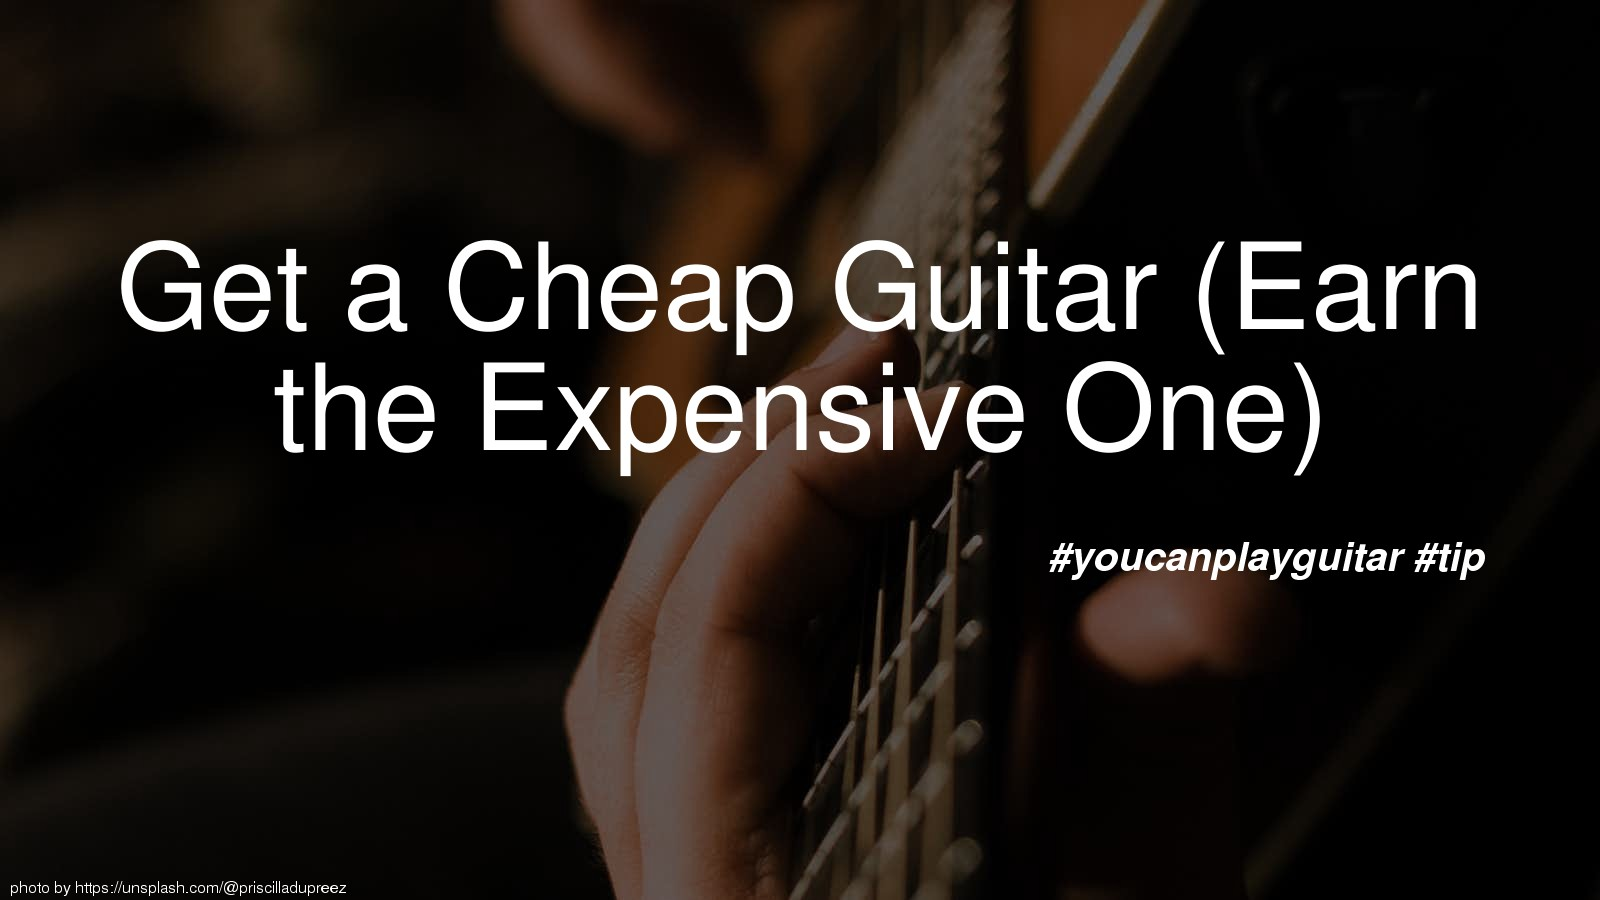 Get a Cheap Guitar (Earn the Expensive One)